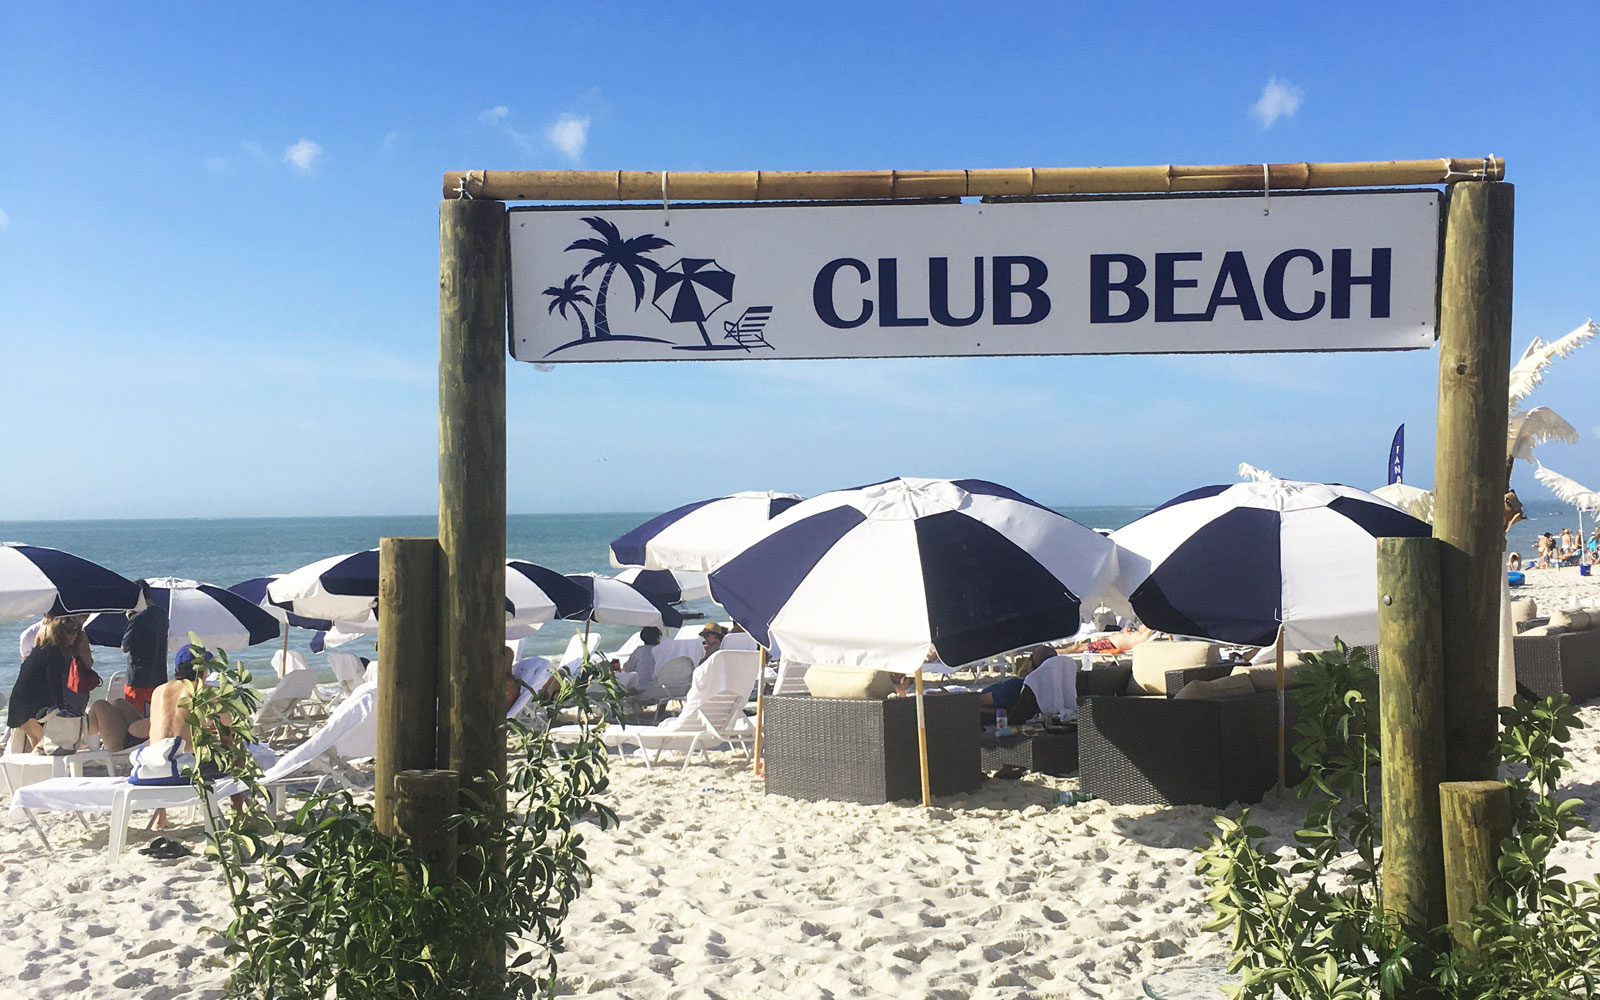 Beach Club, Ritz-Carlton Naples